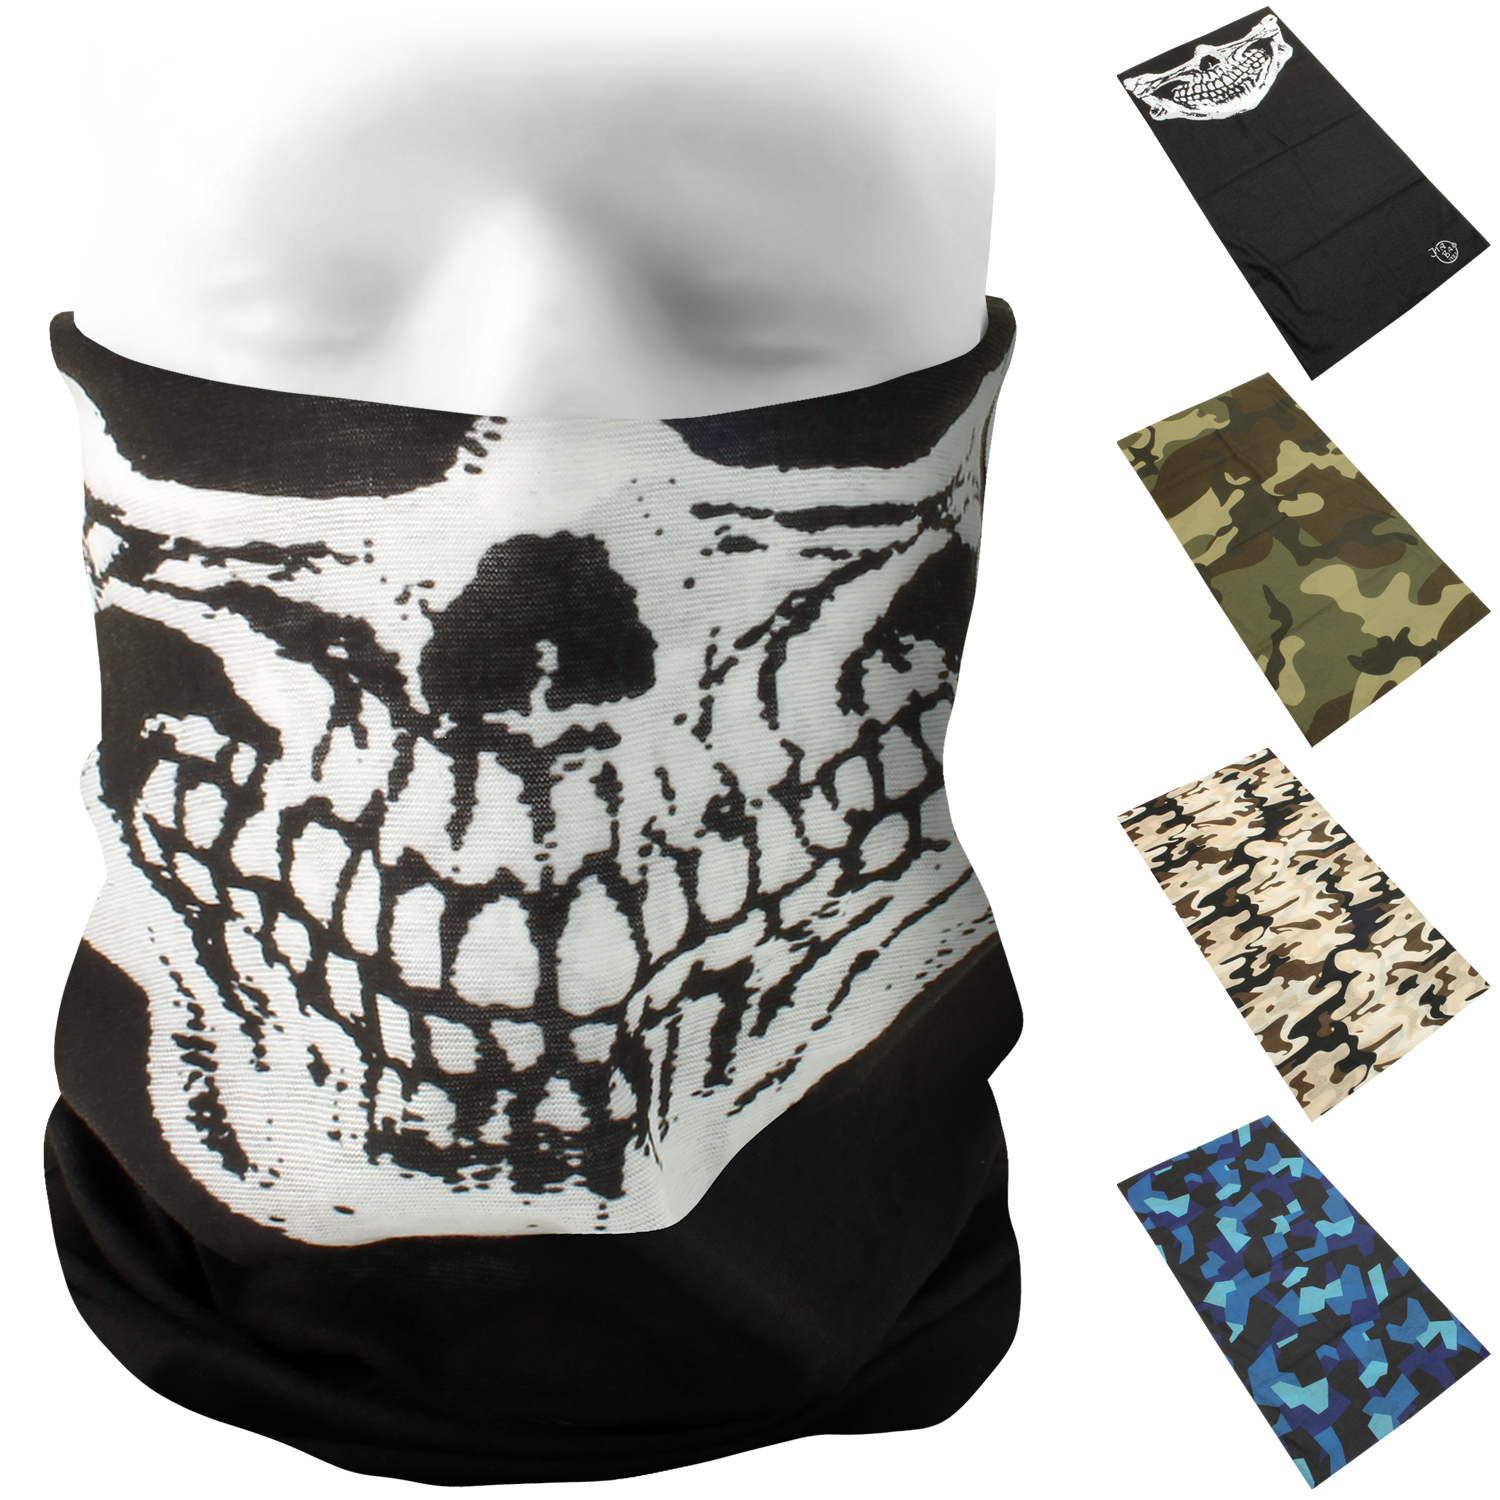 CampTeck Multi-Purpose Seamless Bandana Camo Skull Print Tube Face Mask Balaclava for Motorcycling Hiking Riding Cycling